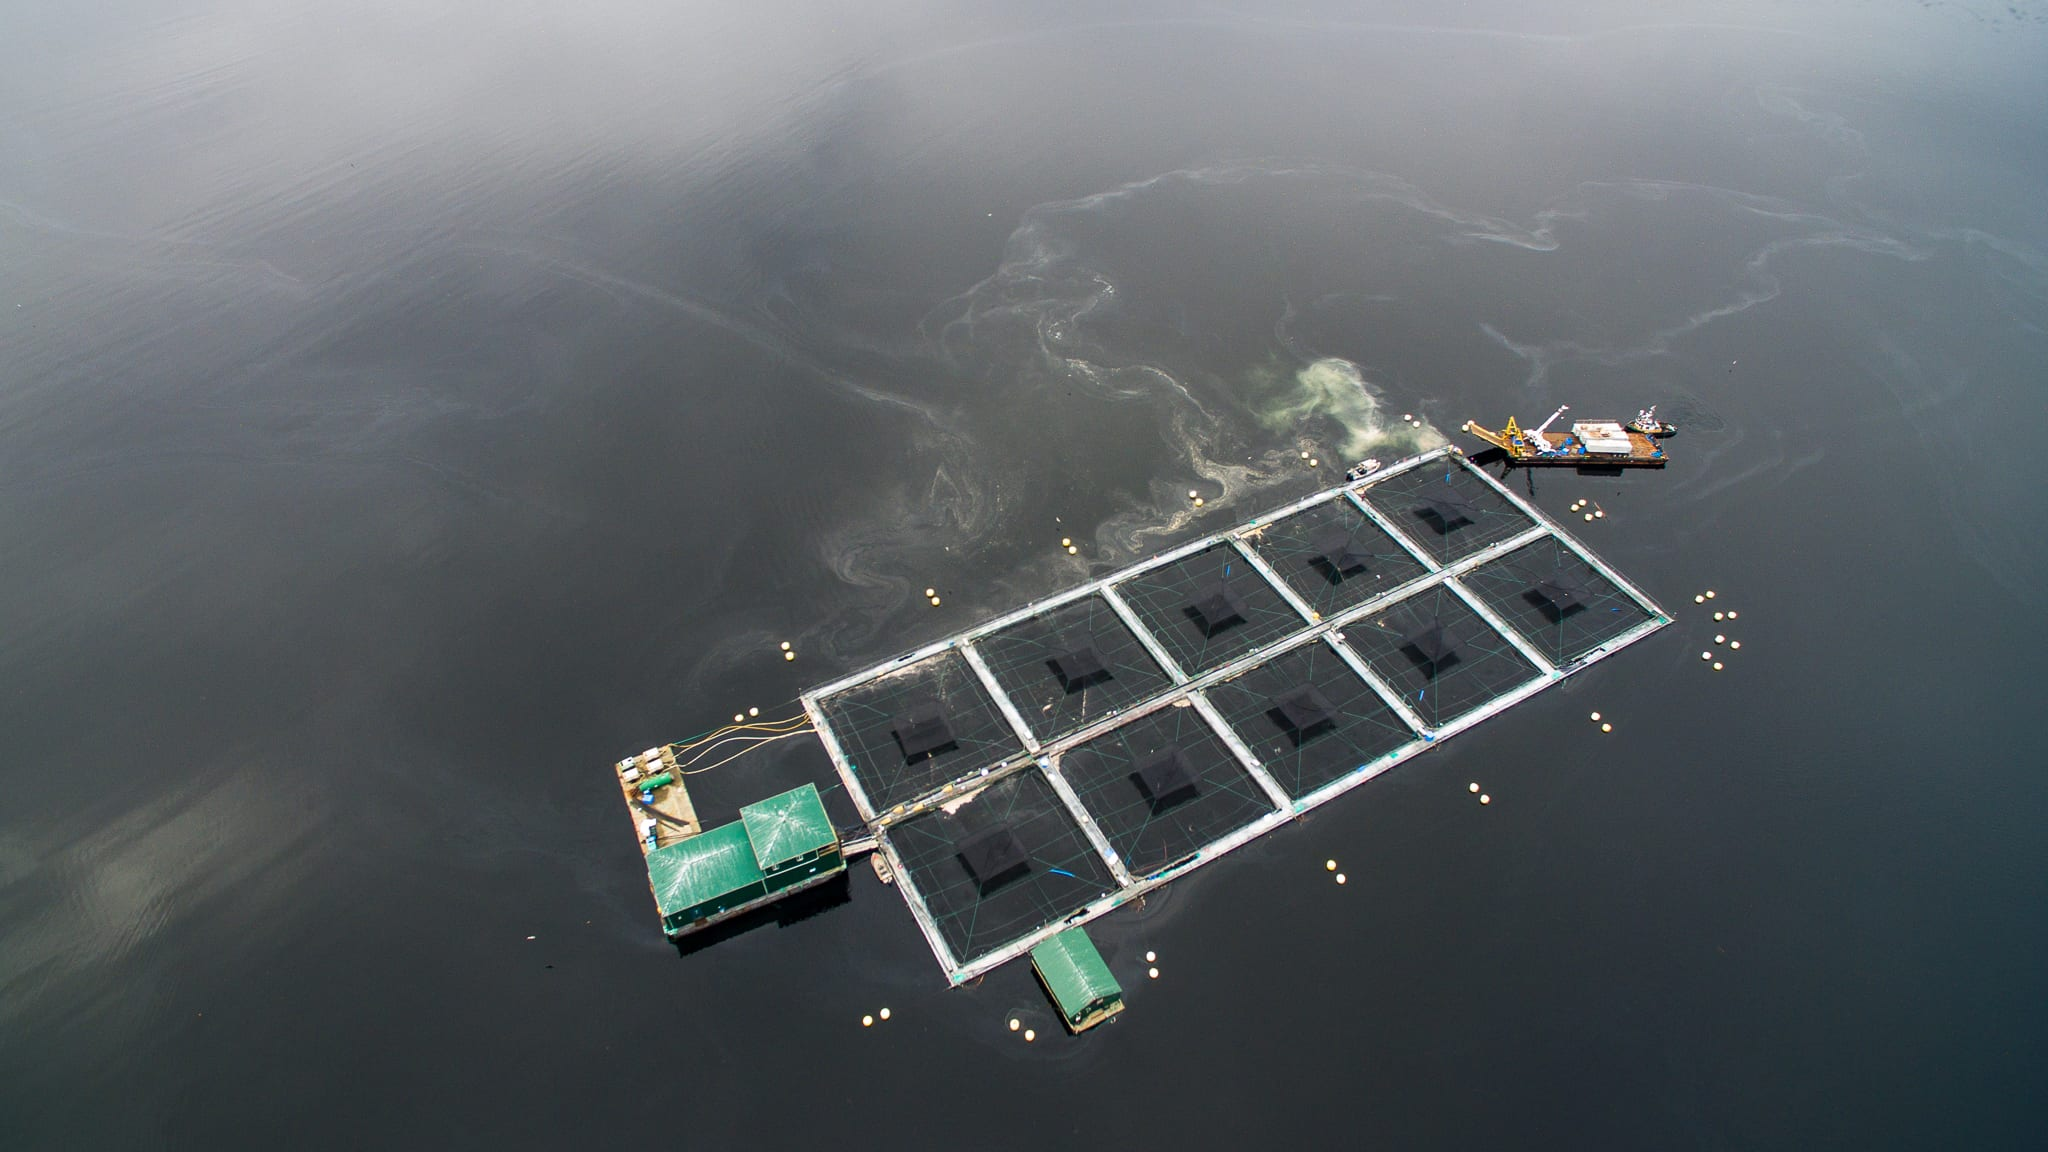 Clayoquot Sound salmon farm die-off